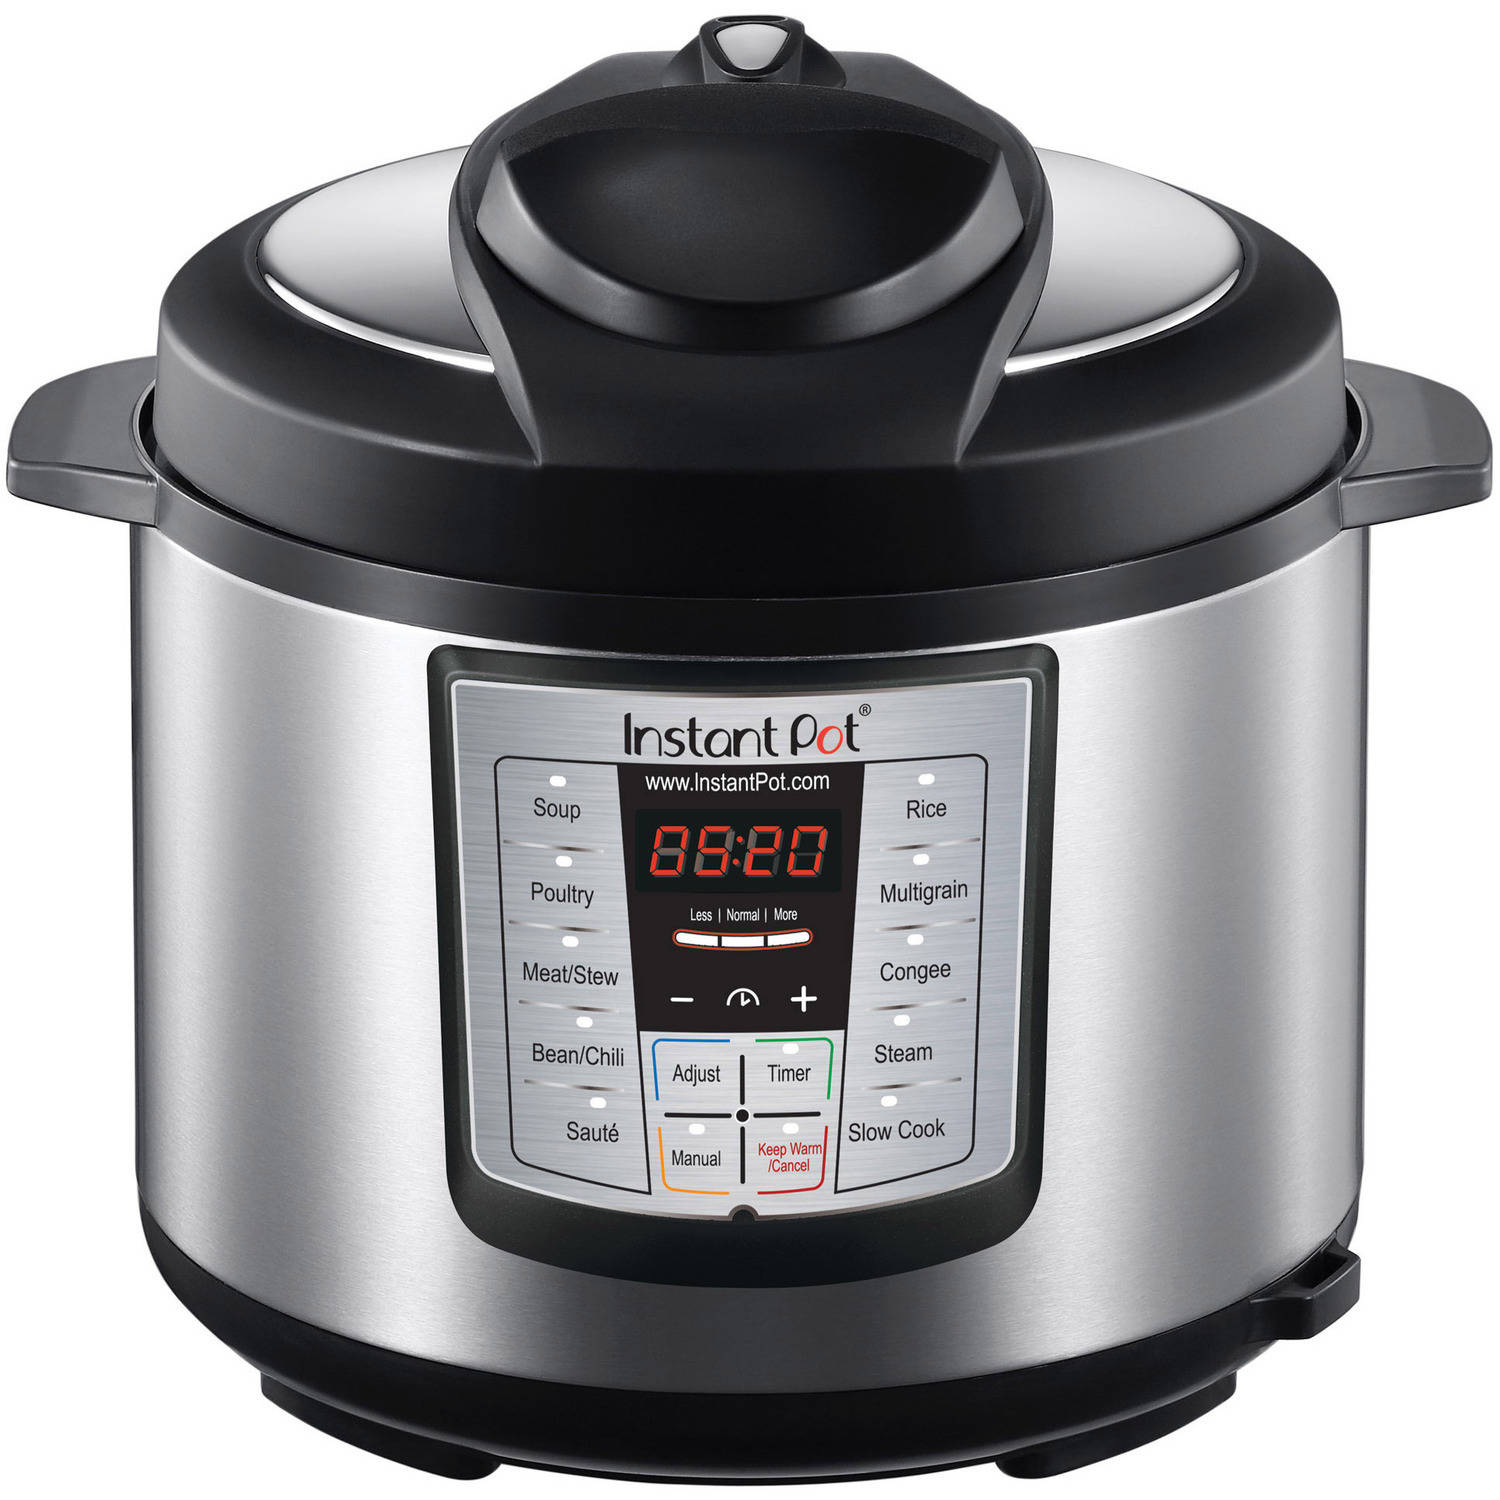 Instant Pot IP-LUX60 Stainless Steel 6-Quart 6-in-1 Multi-Functional Pressure Cooker